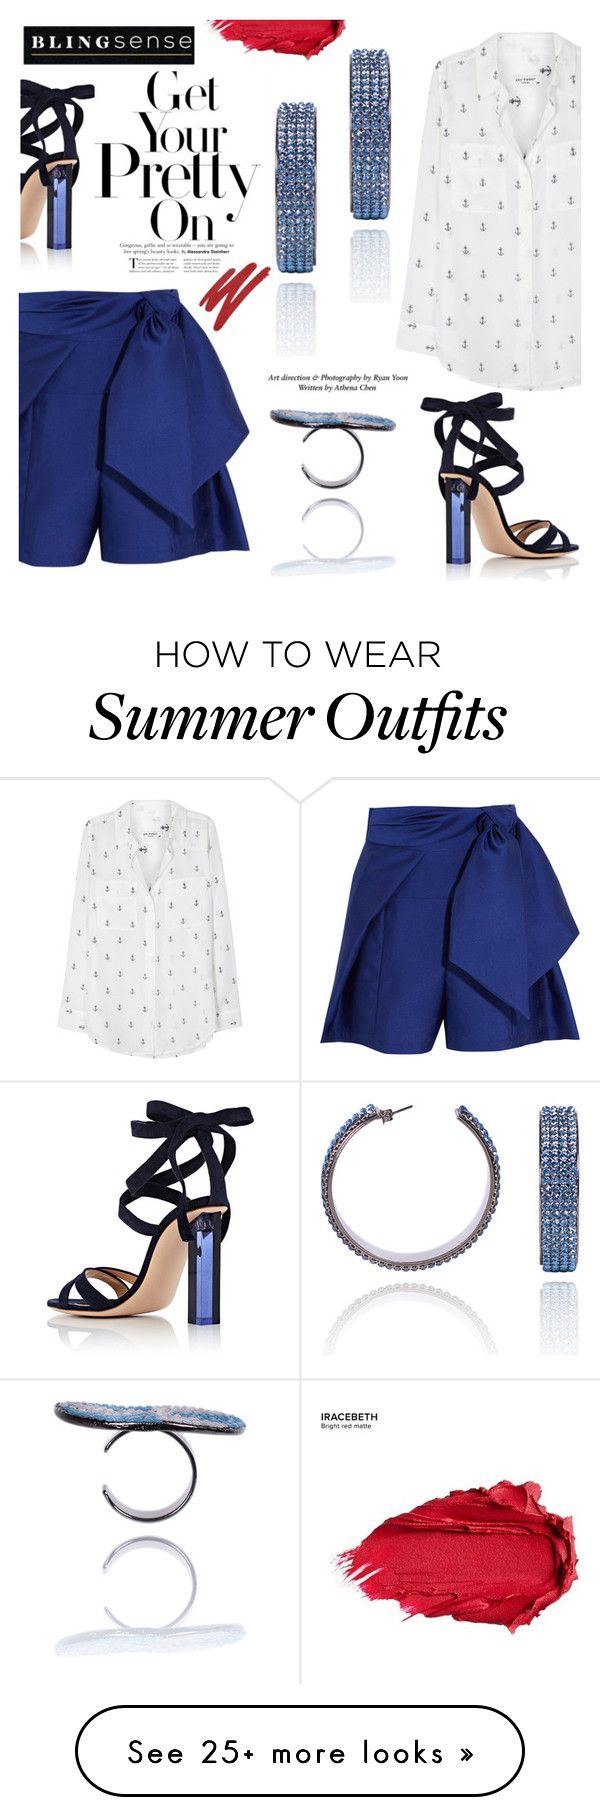 """Get Your Pretty One"" by blingsense on Polyvore featuring Paper London..."